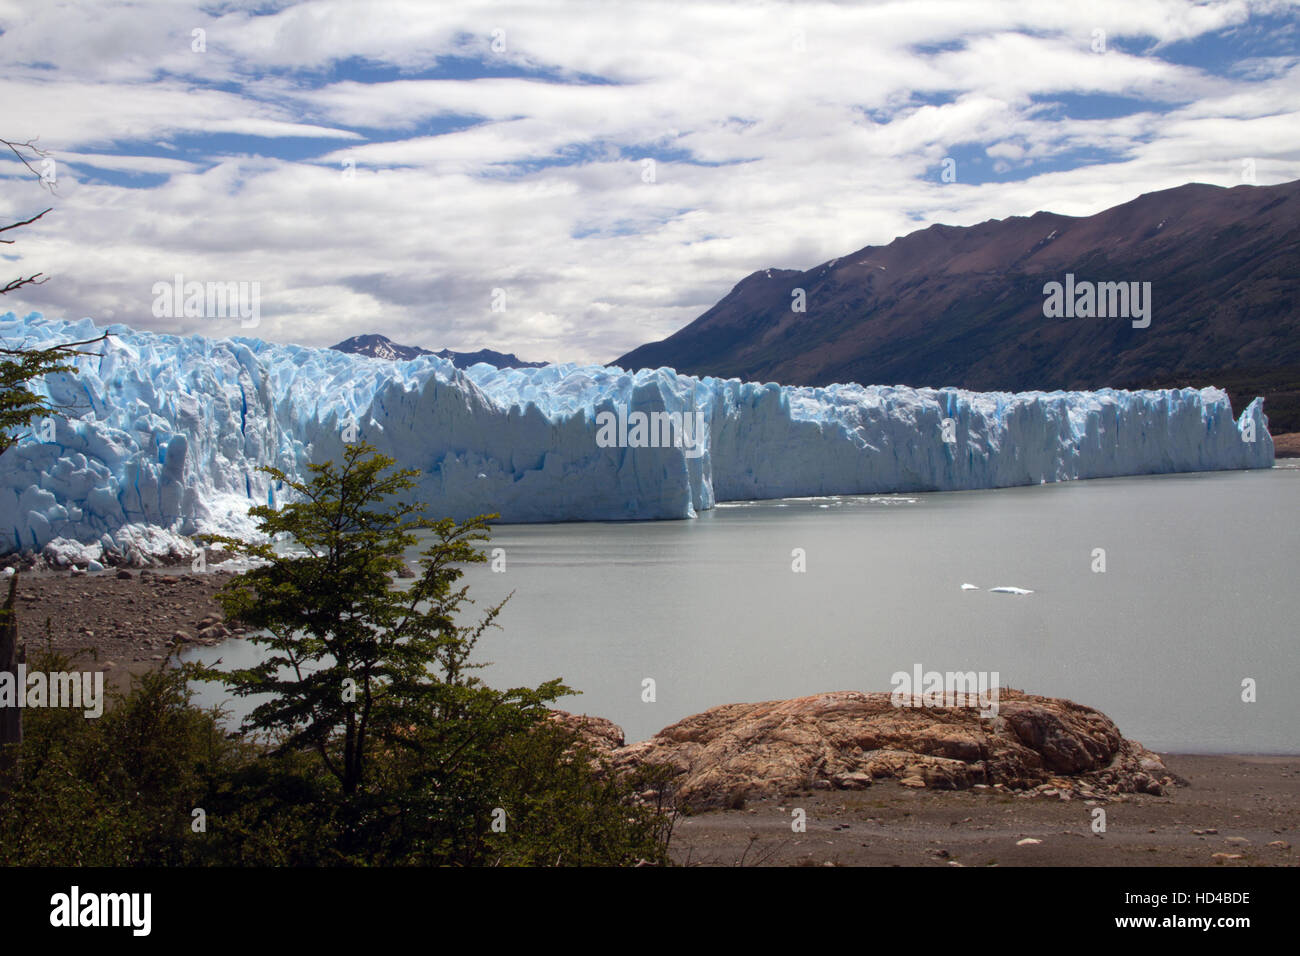 EL CALAFATE, ARG, 06.12.2016: Argentinian Perito Moreno Glacier located in the Los Glaciares National Park in southwest Stock Photo